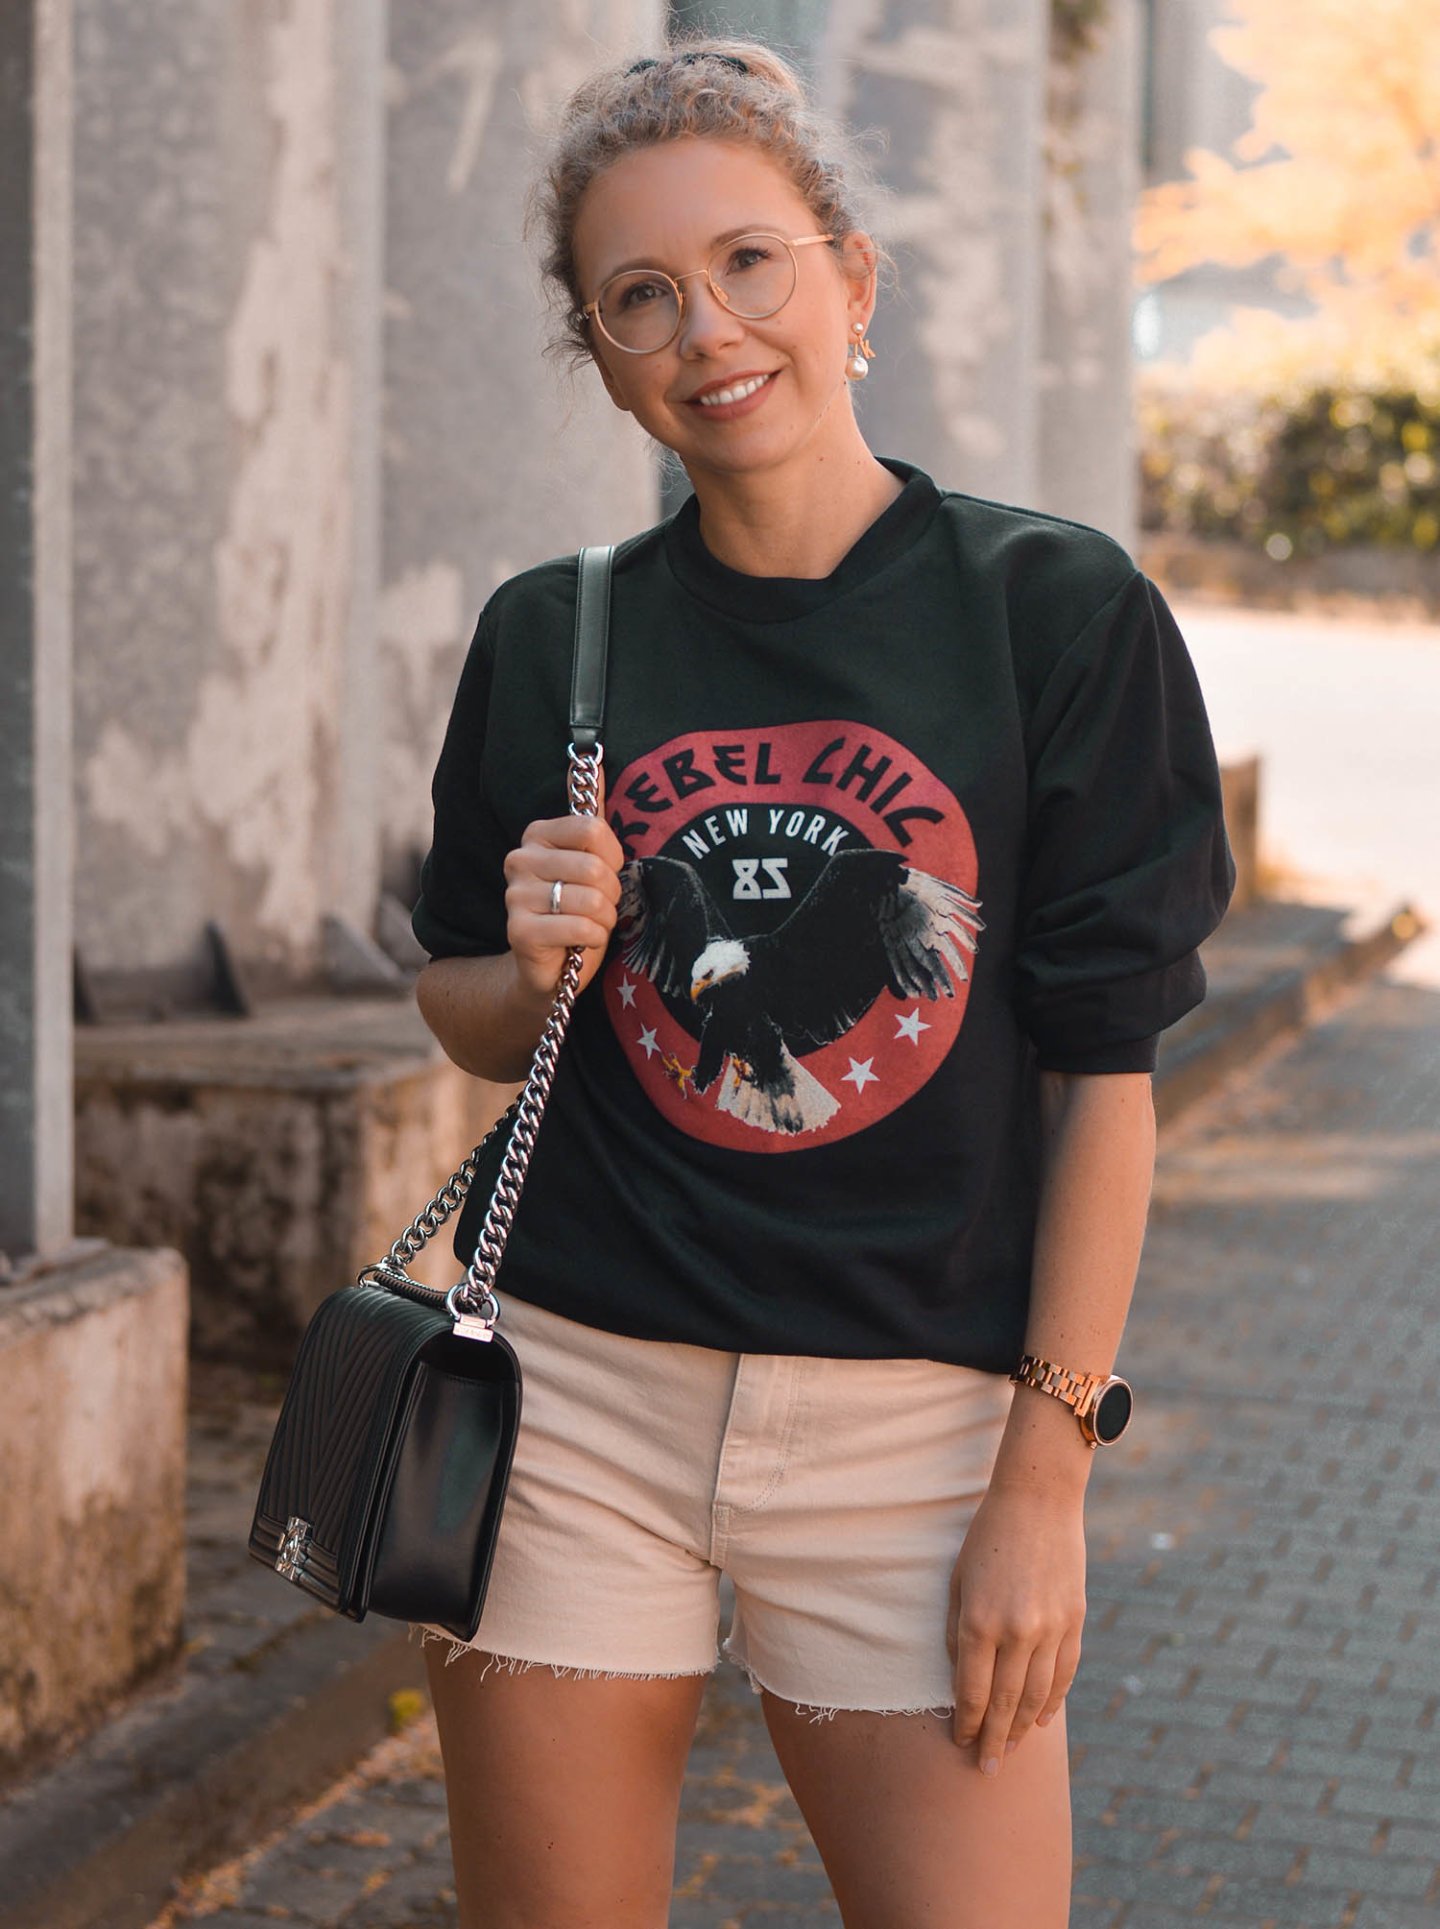 Chanel boy bag, sweatshirt mit adlerprint und shorts